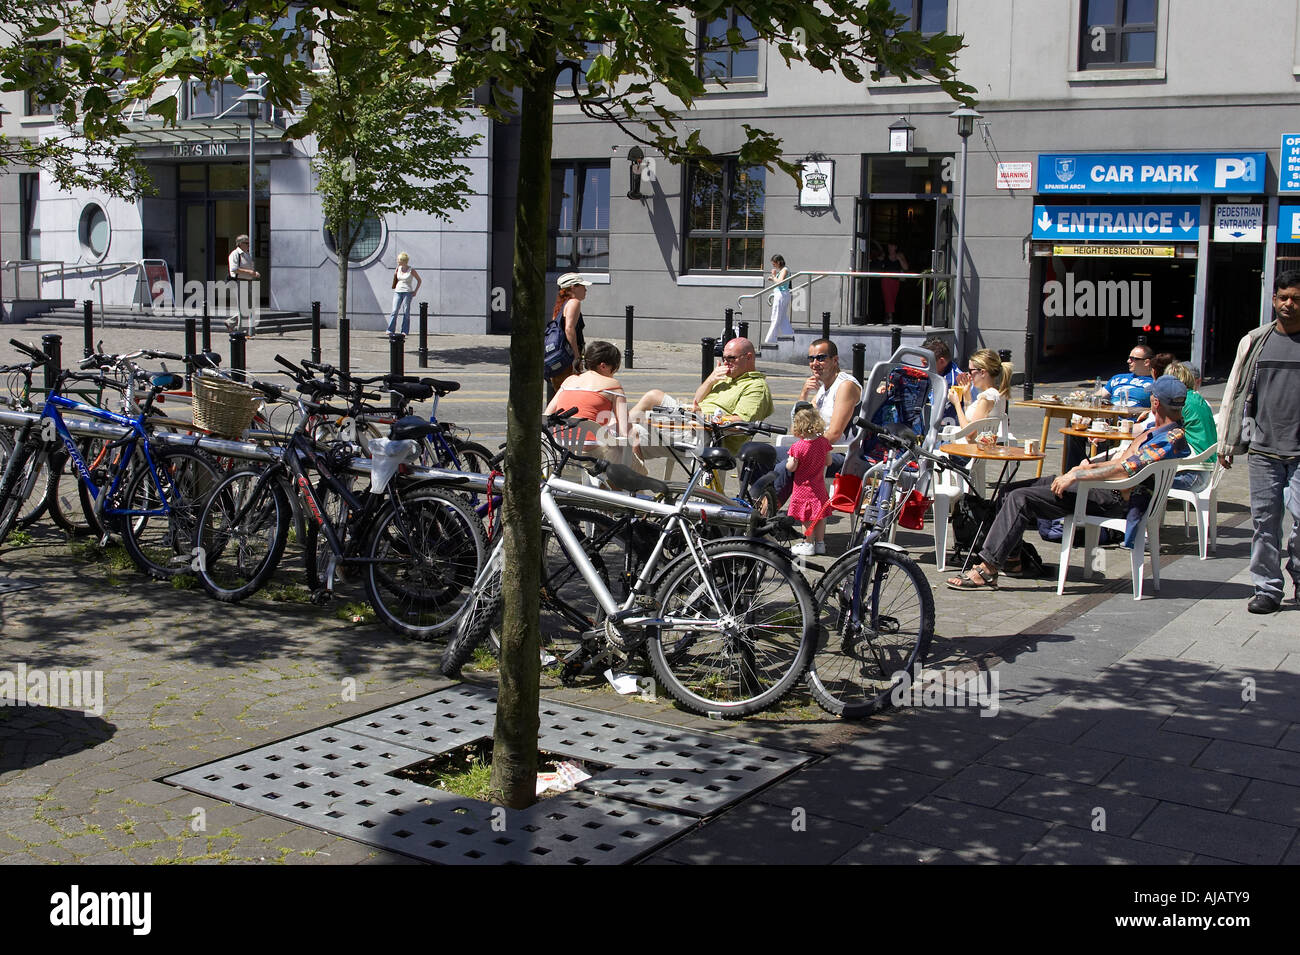 familes enjoying a drink and lunch on quay street next to a bike rack Galway city county Galway Republic of Ireland - Stock Image